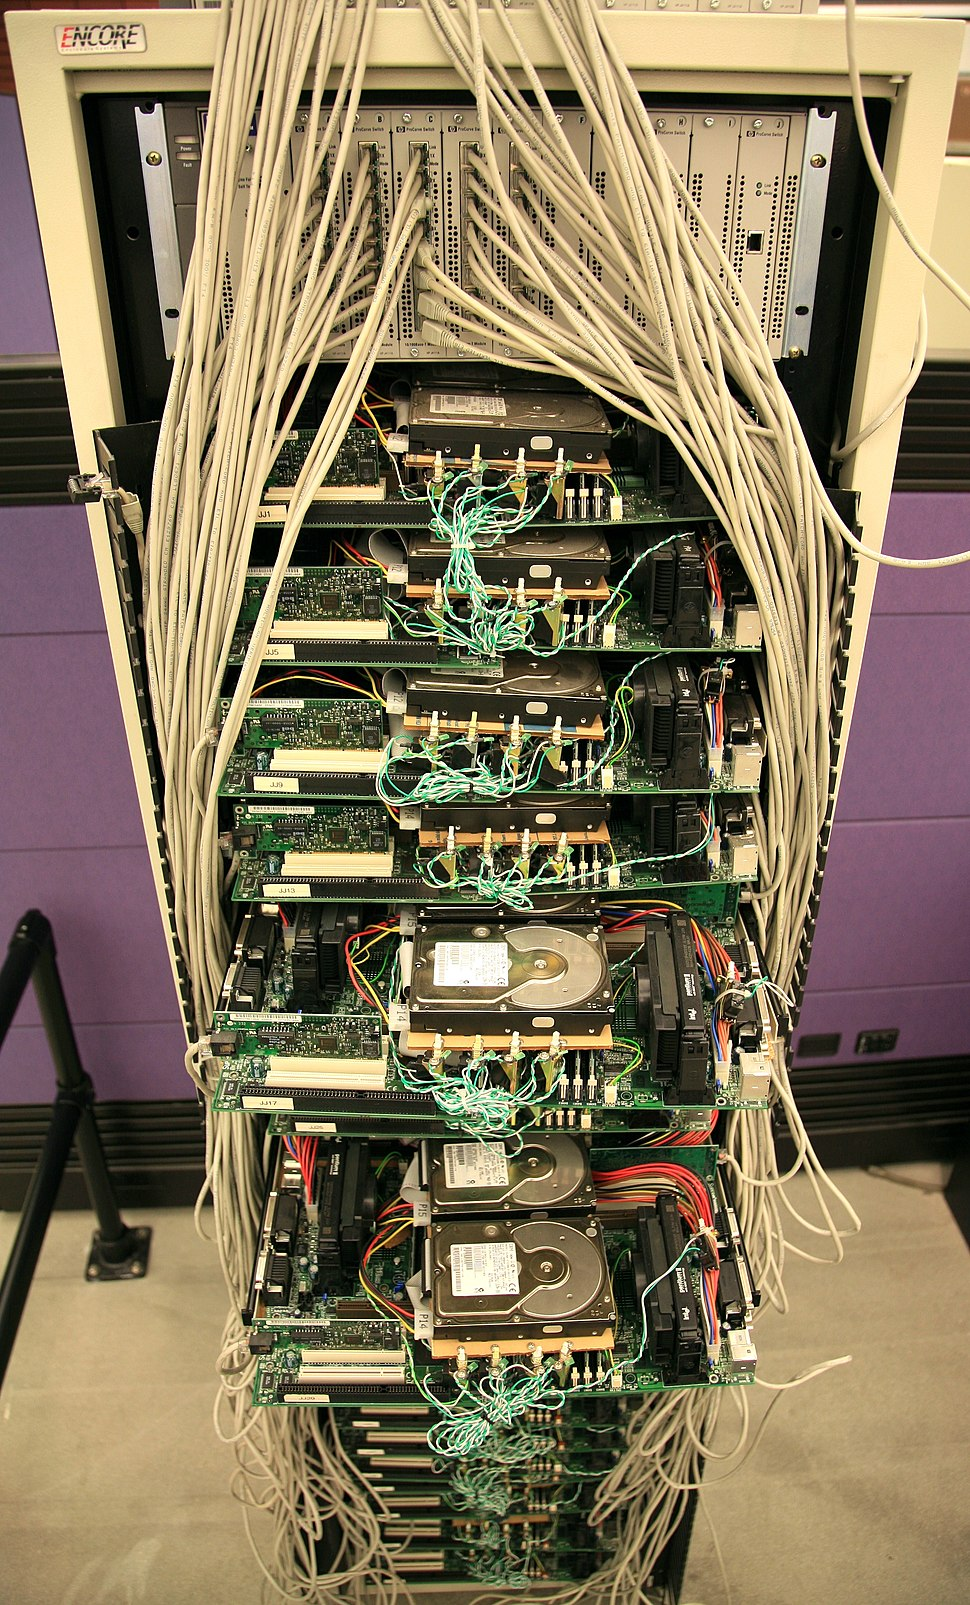 Google%E2%80%99s First Production Server